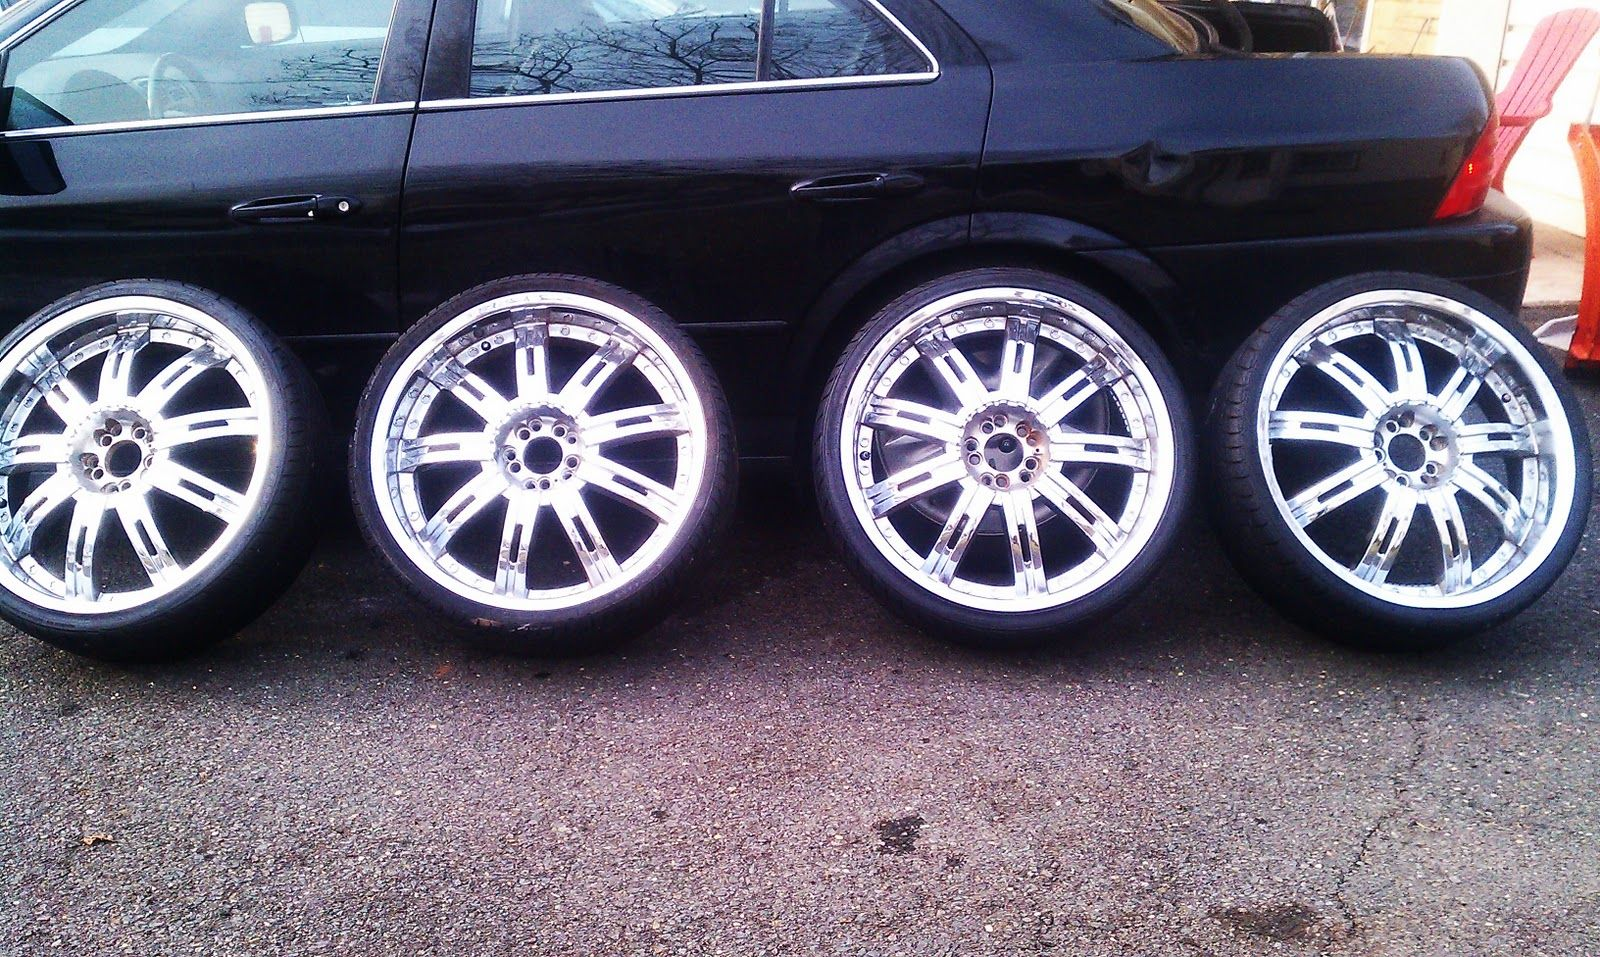 Used Rims For Sale >> 22 Rims For Sale Used Rims Rims For Sale 22 Inch Rims